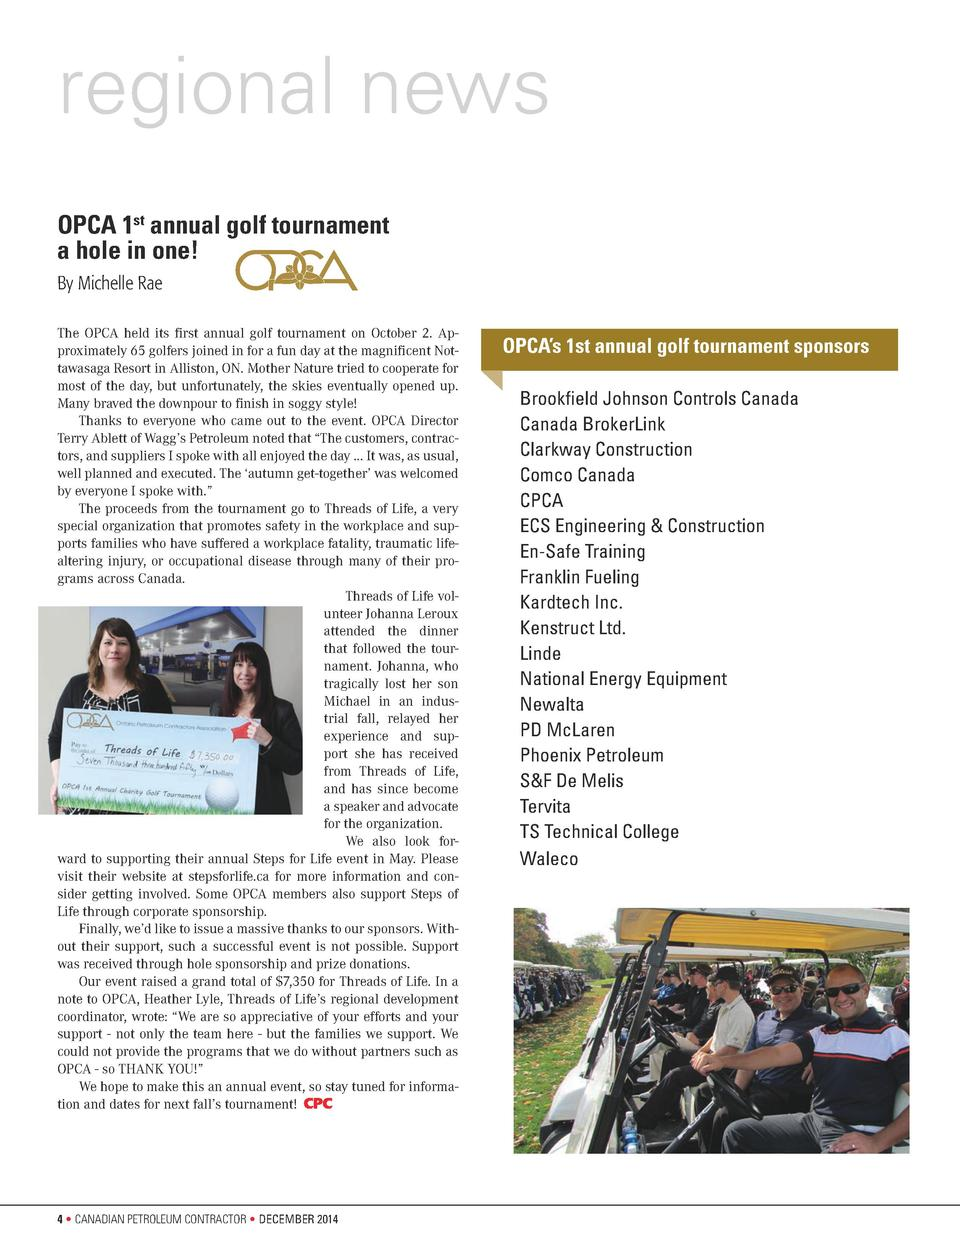 regional news OPCA 1st annual golf tournament a hole in one  By Michelle Rae The OPCA held its first annual golf tournamen...